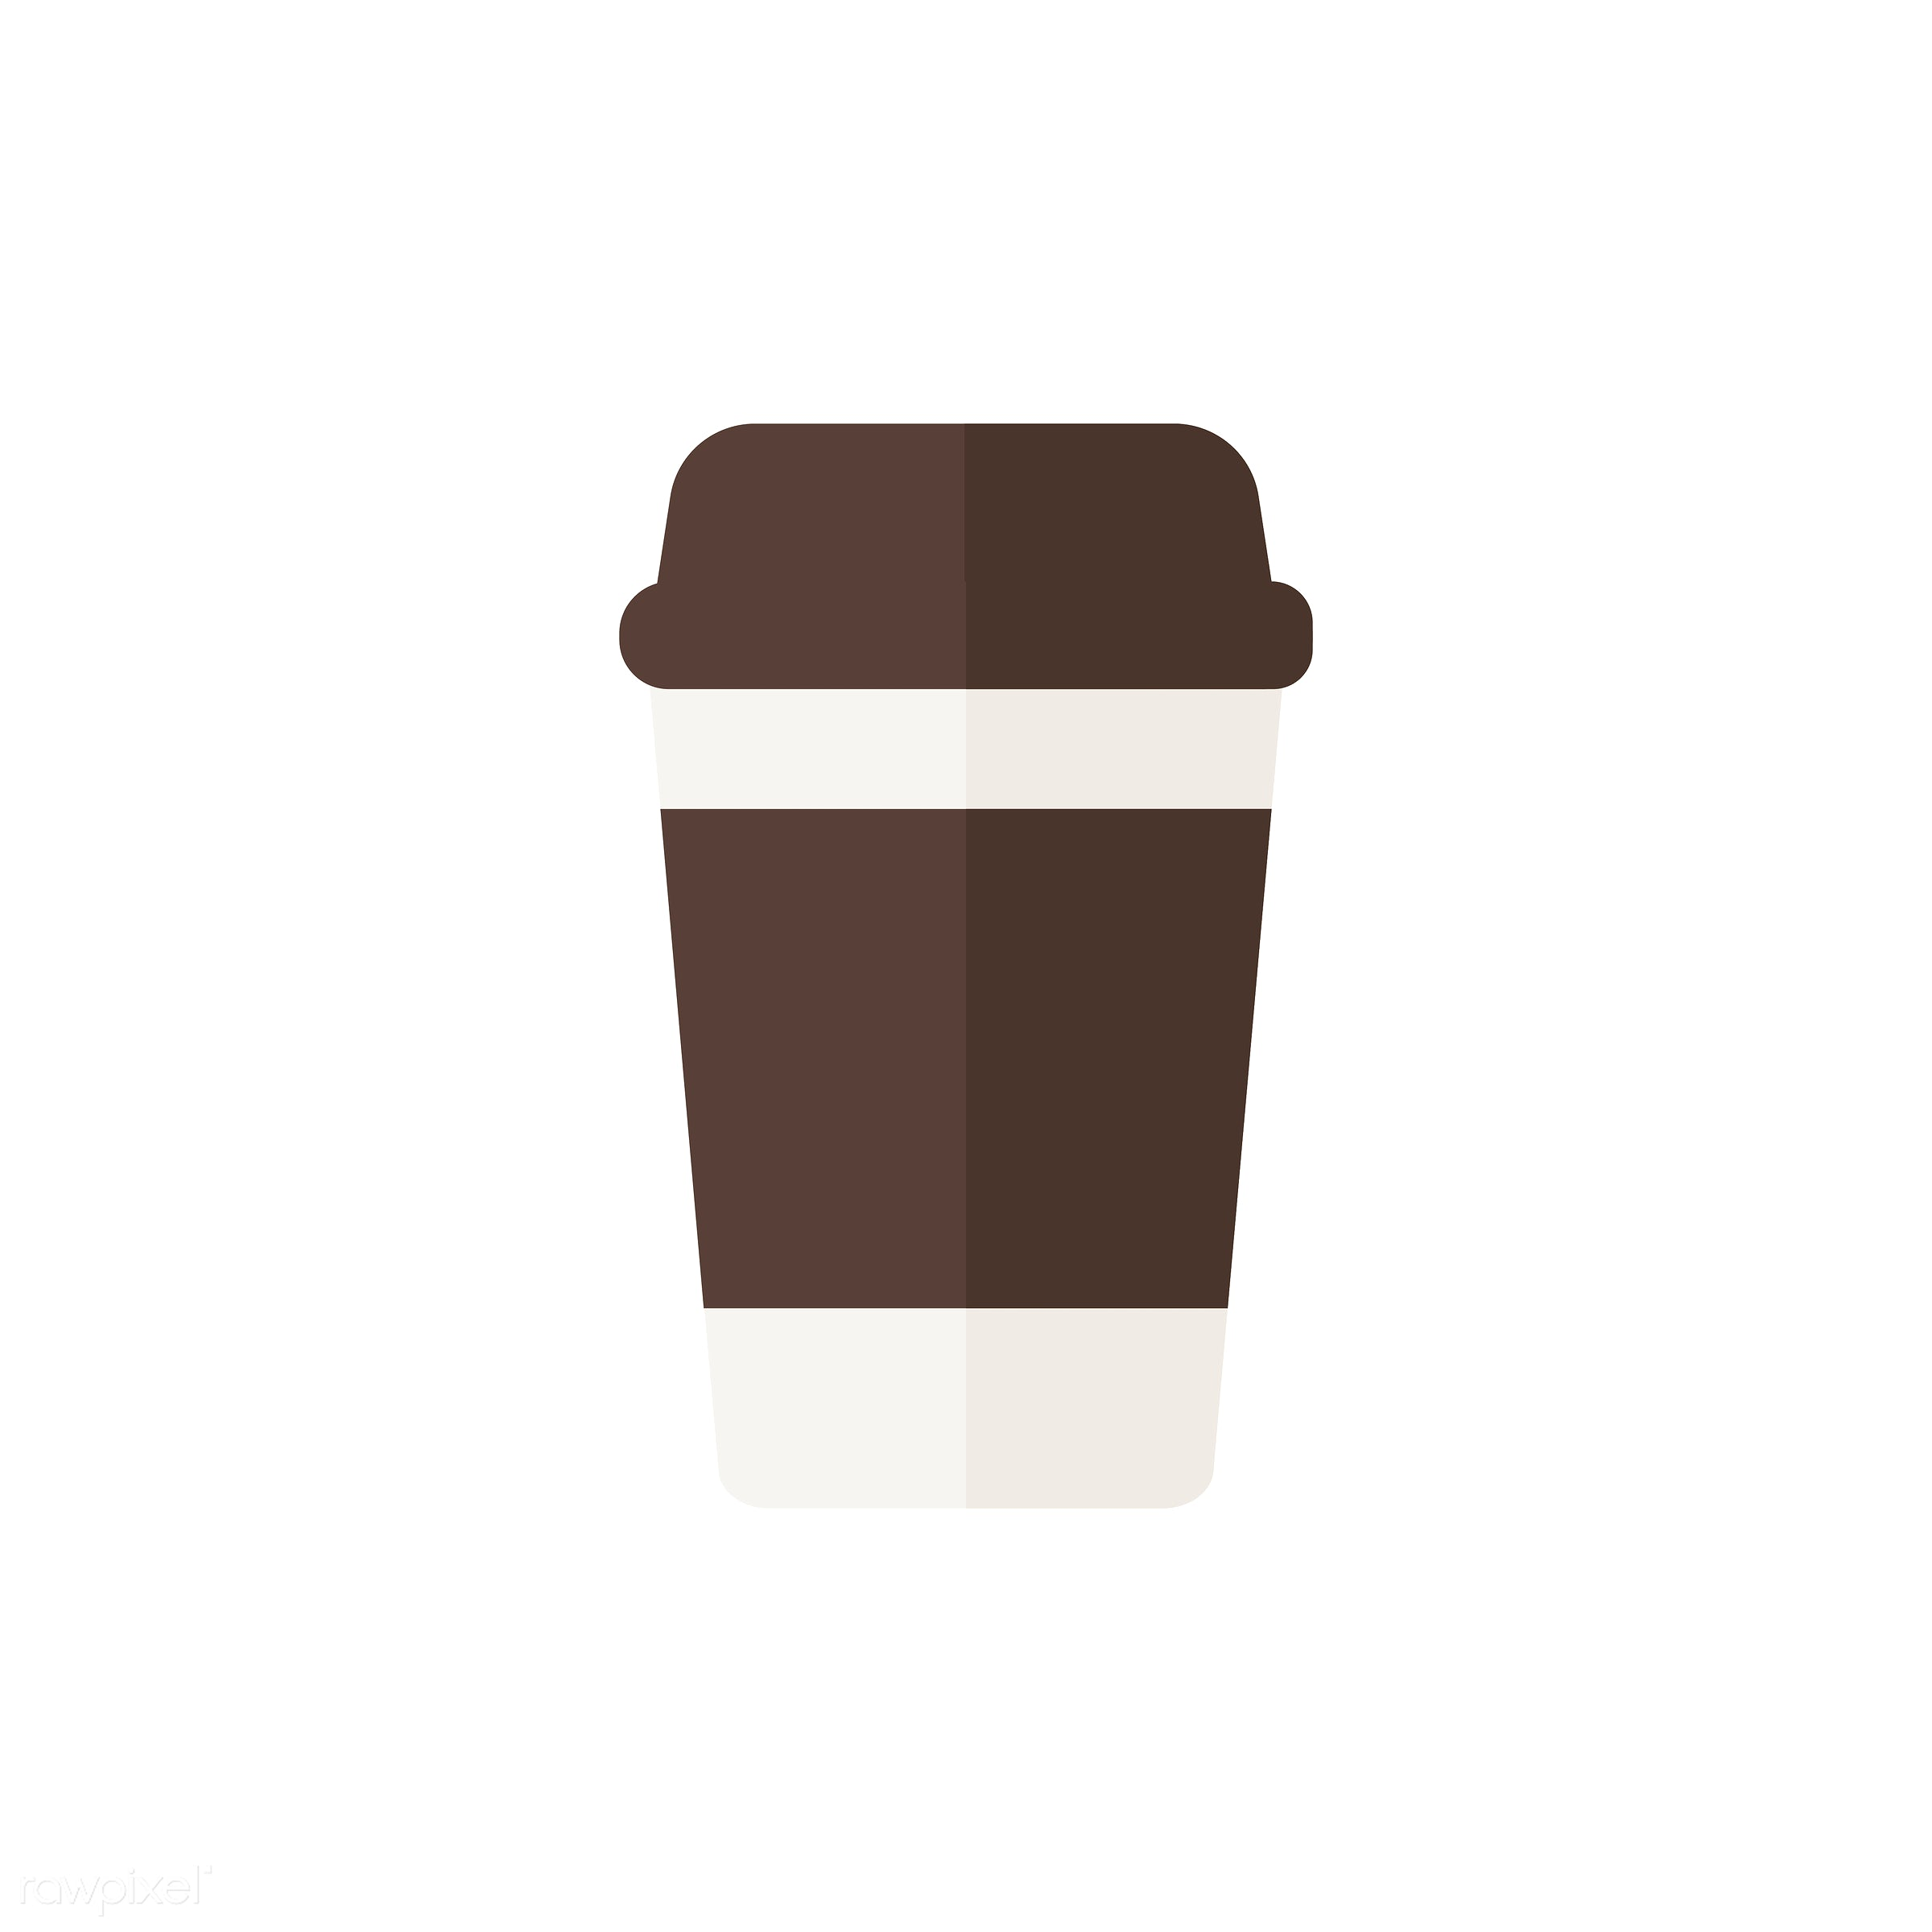 A takeaway glass of coffee vector - vector, graphic, illustration, icon, symbol, colorful, cute, drink, beverage, water,...